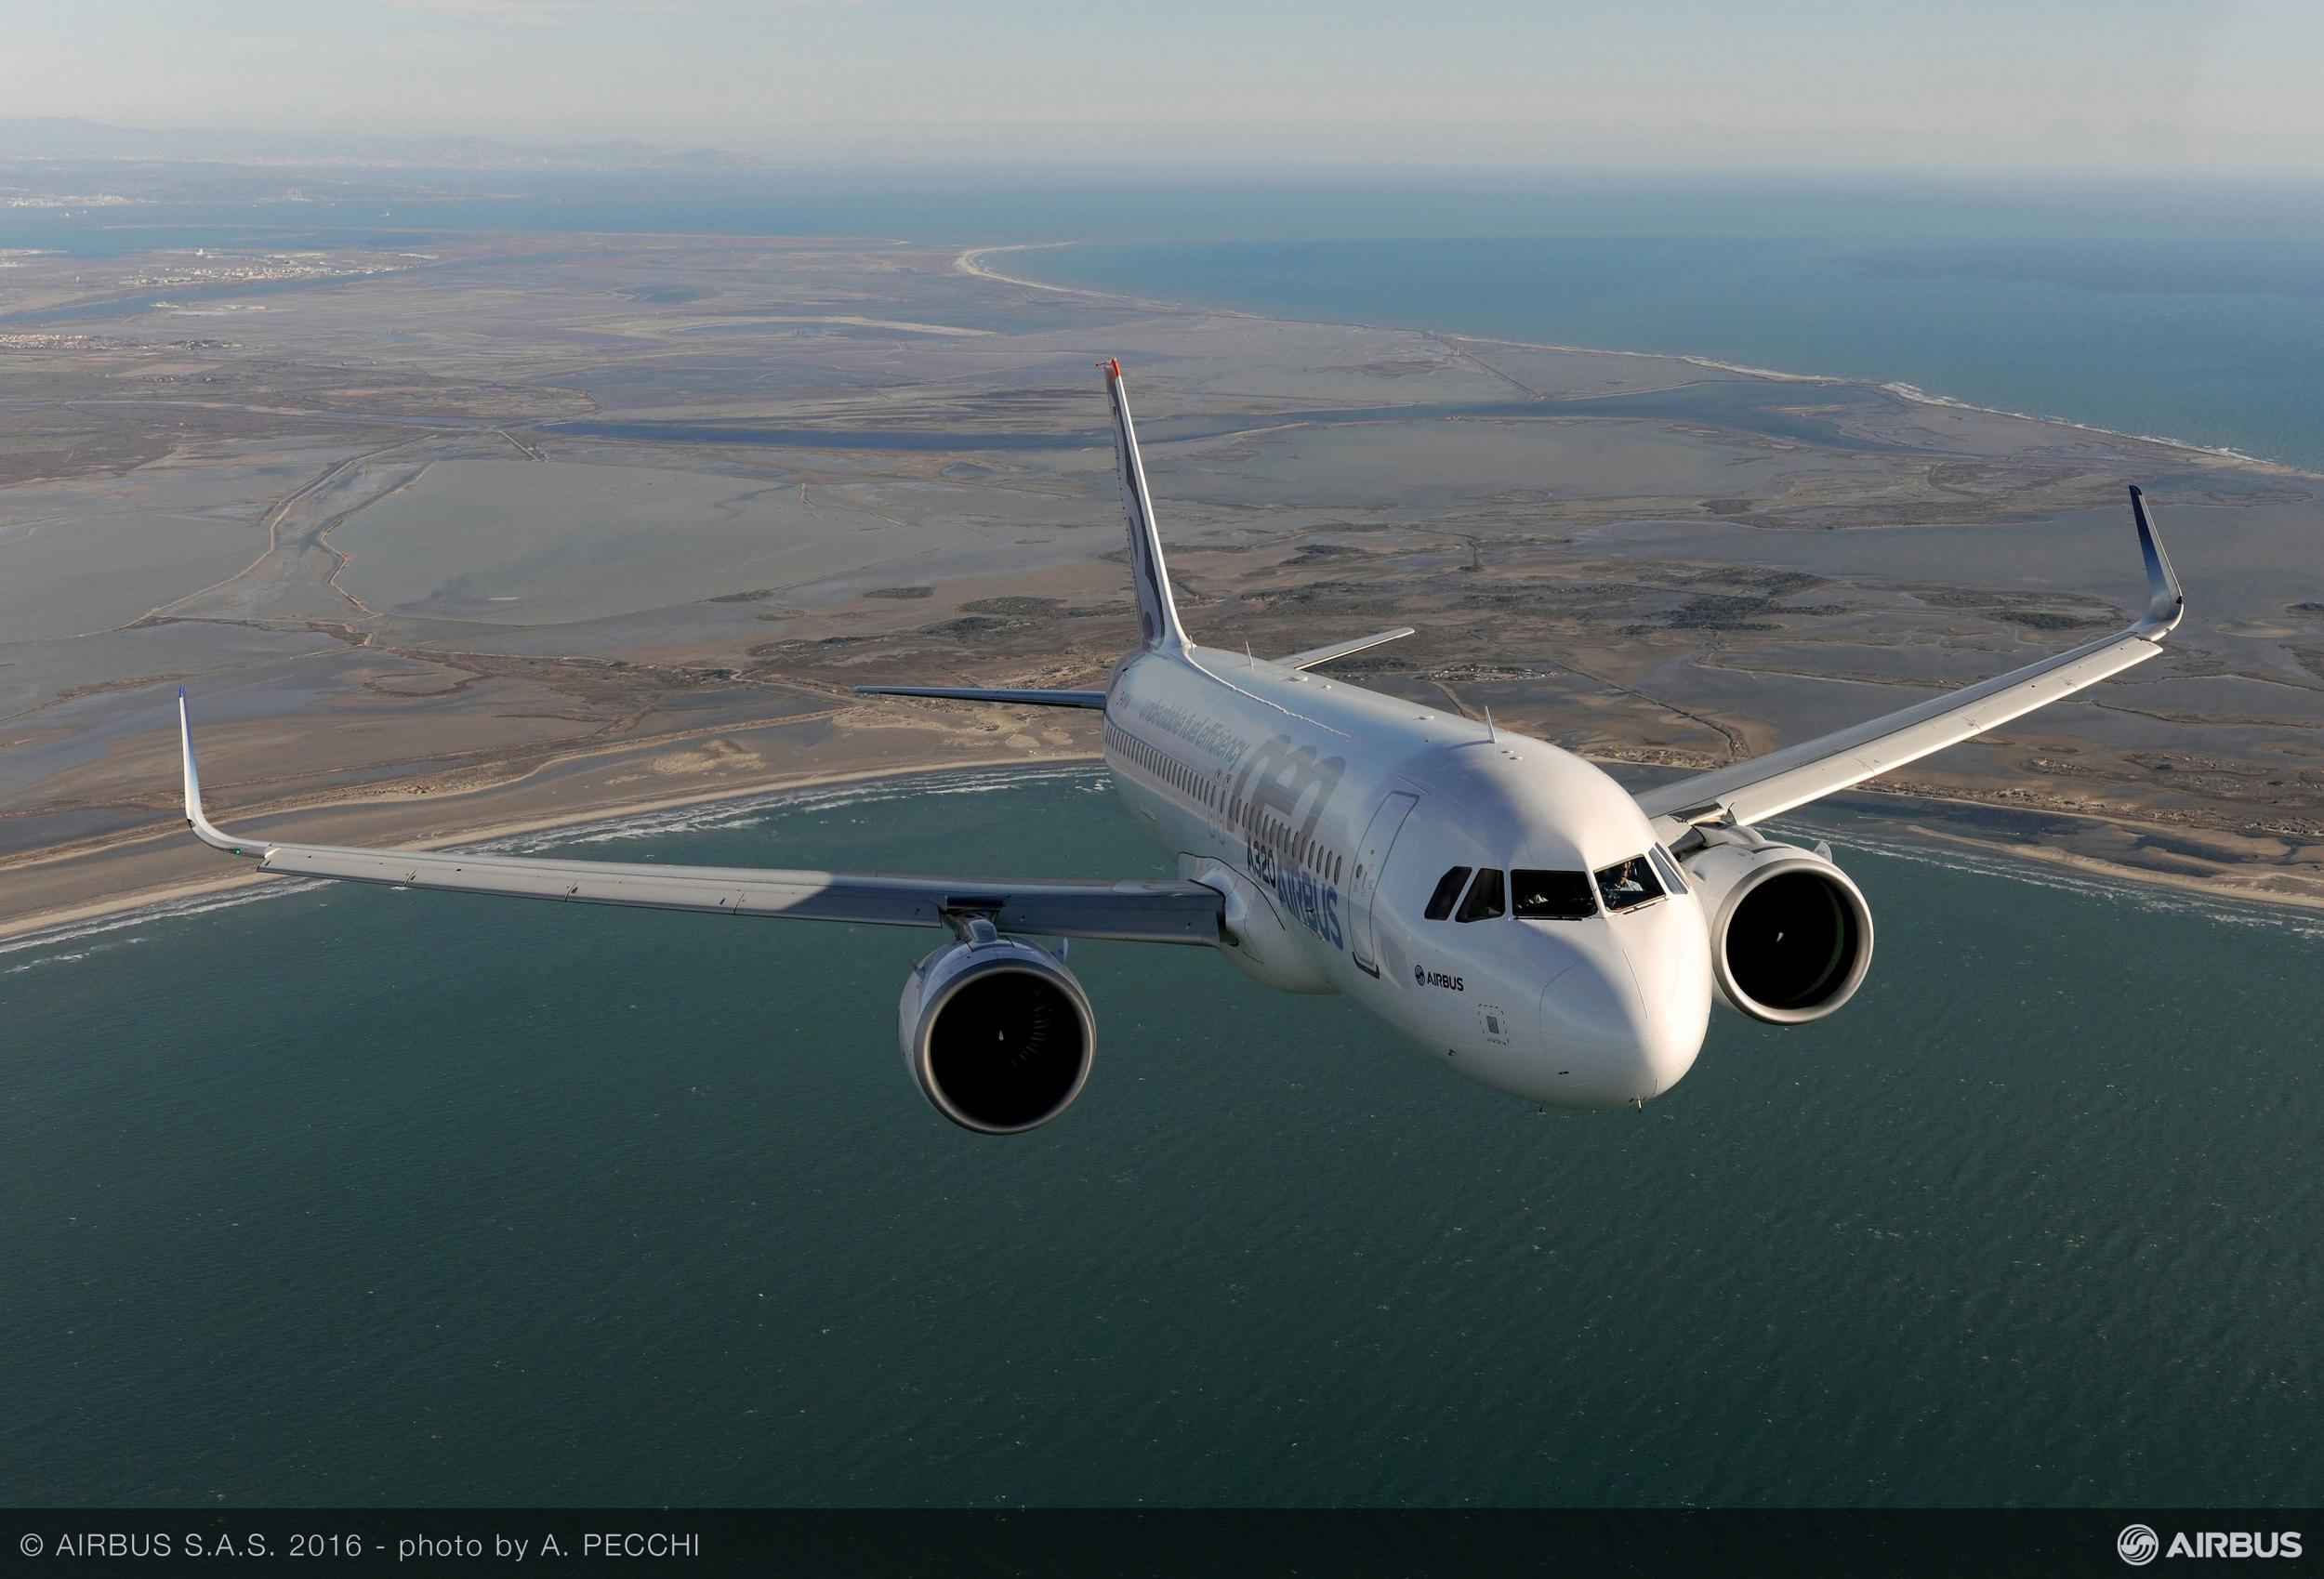 Airbus - latest news, breaking stories and comment - The